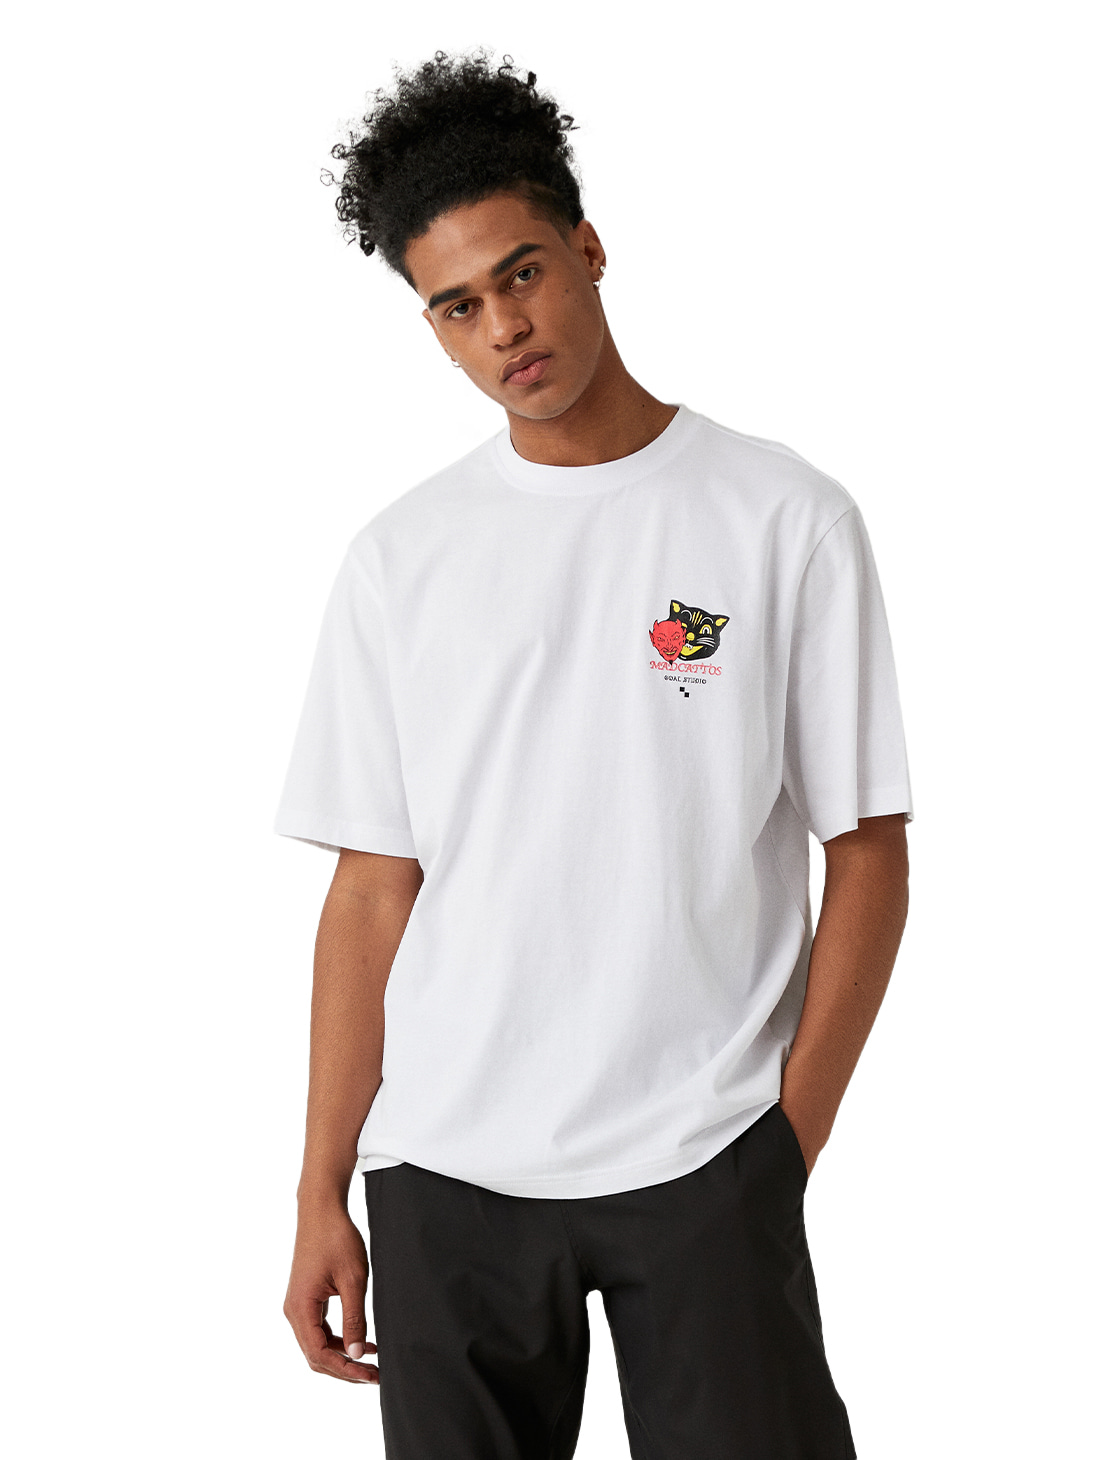 MC MASK GRAPHIC TEE - WHITE